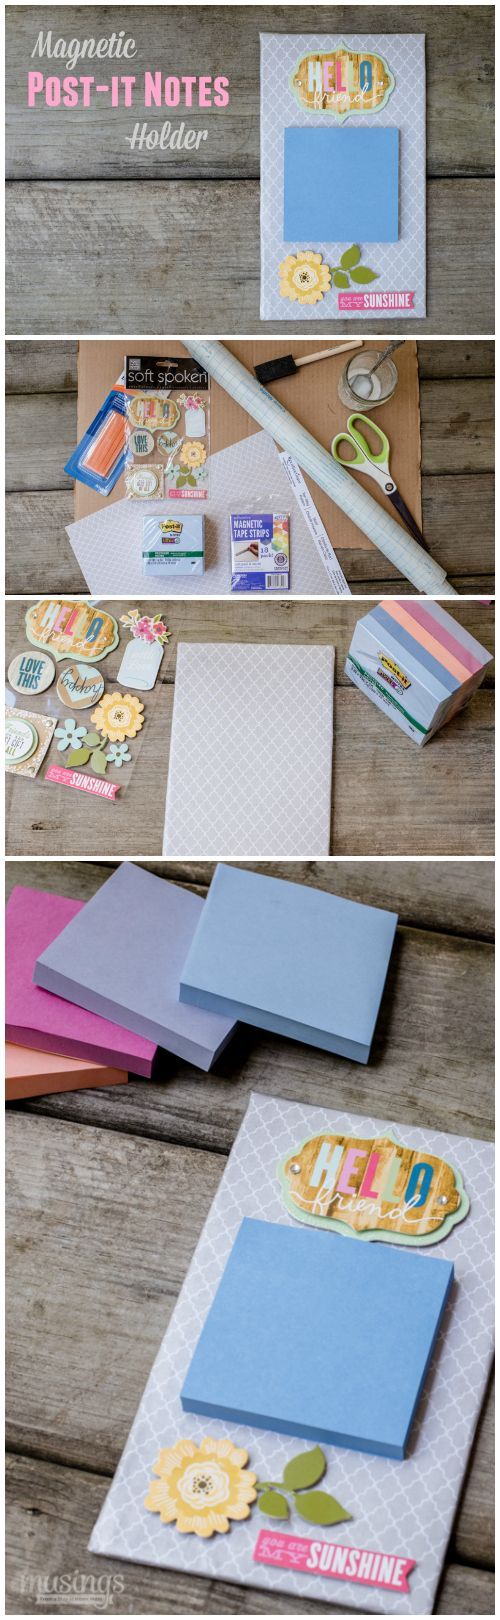 magnetic post it notes holder - Homemade Bedroom Decor